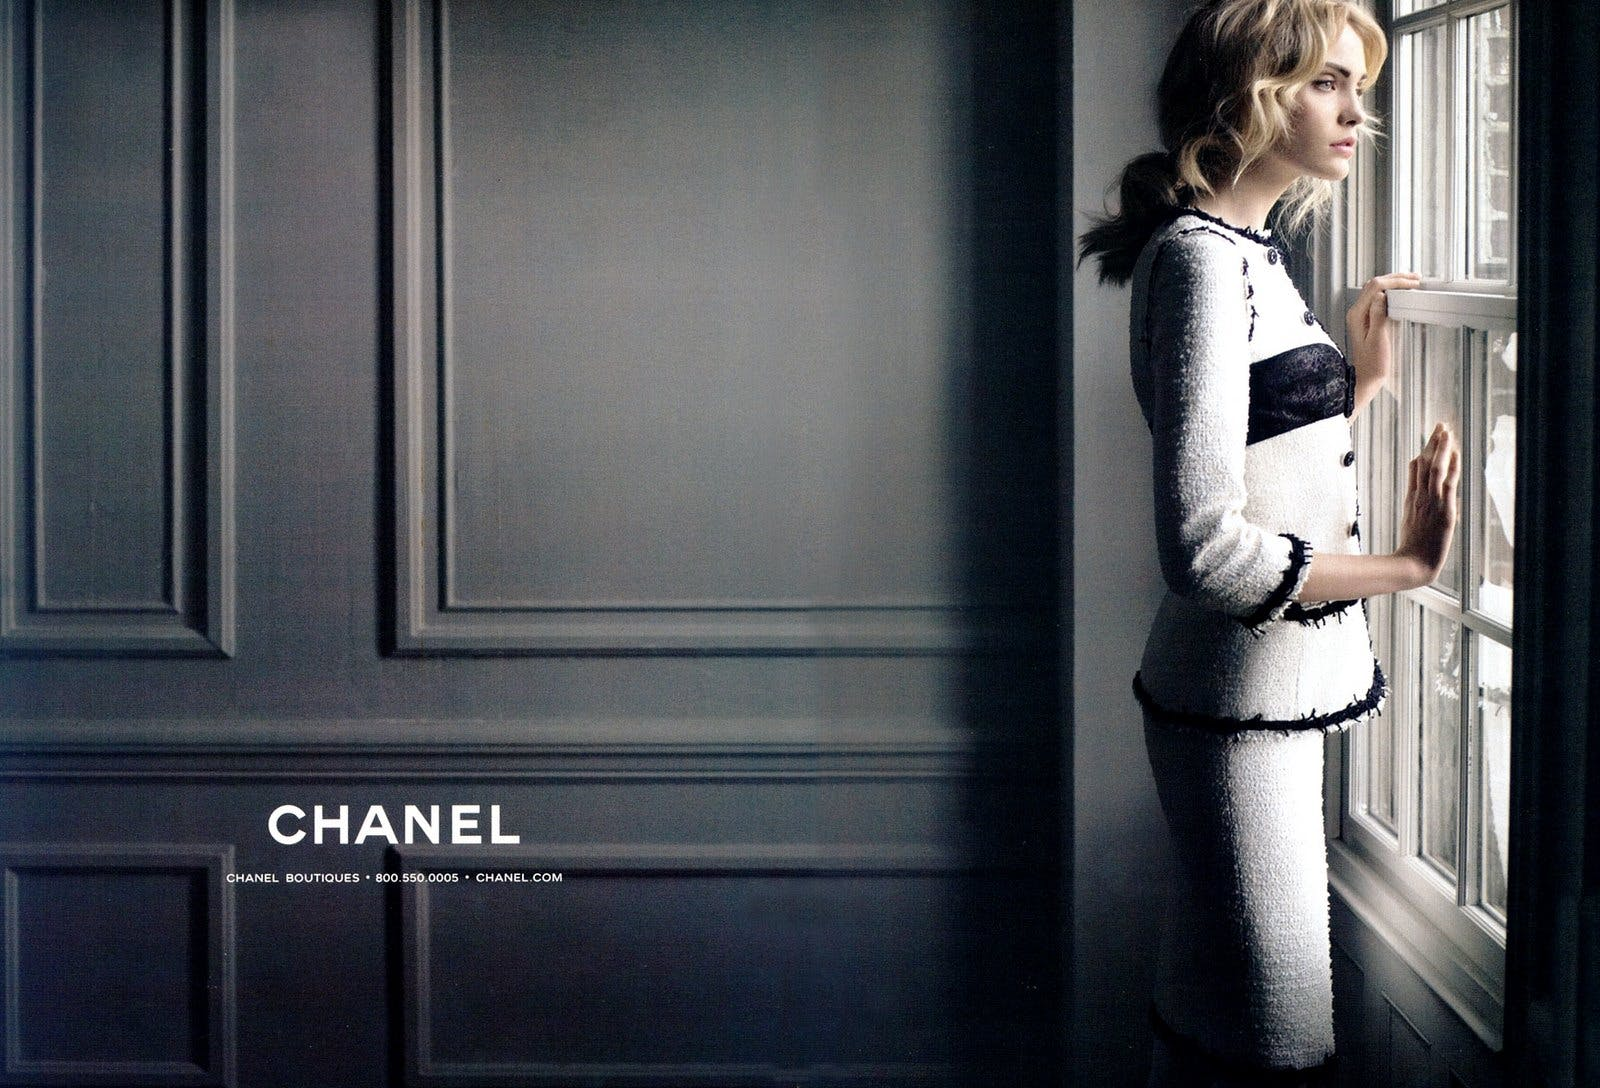 ChanelPic-Model-2013